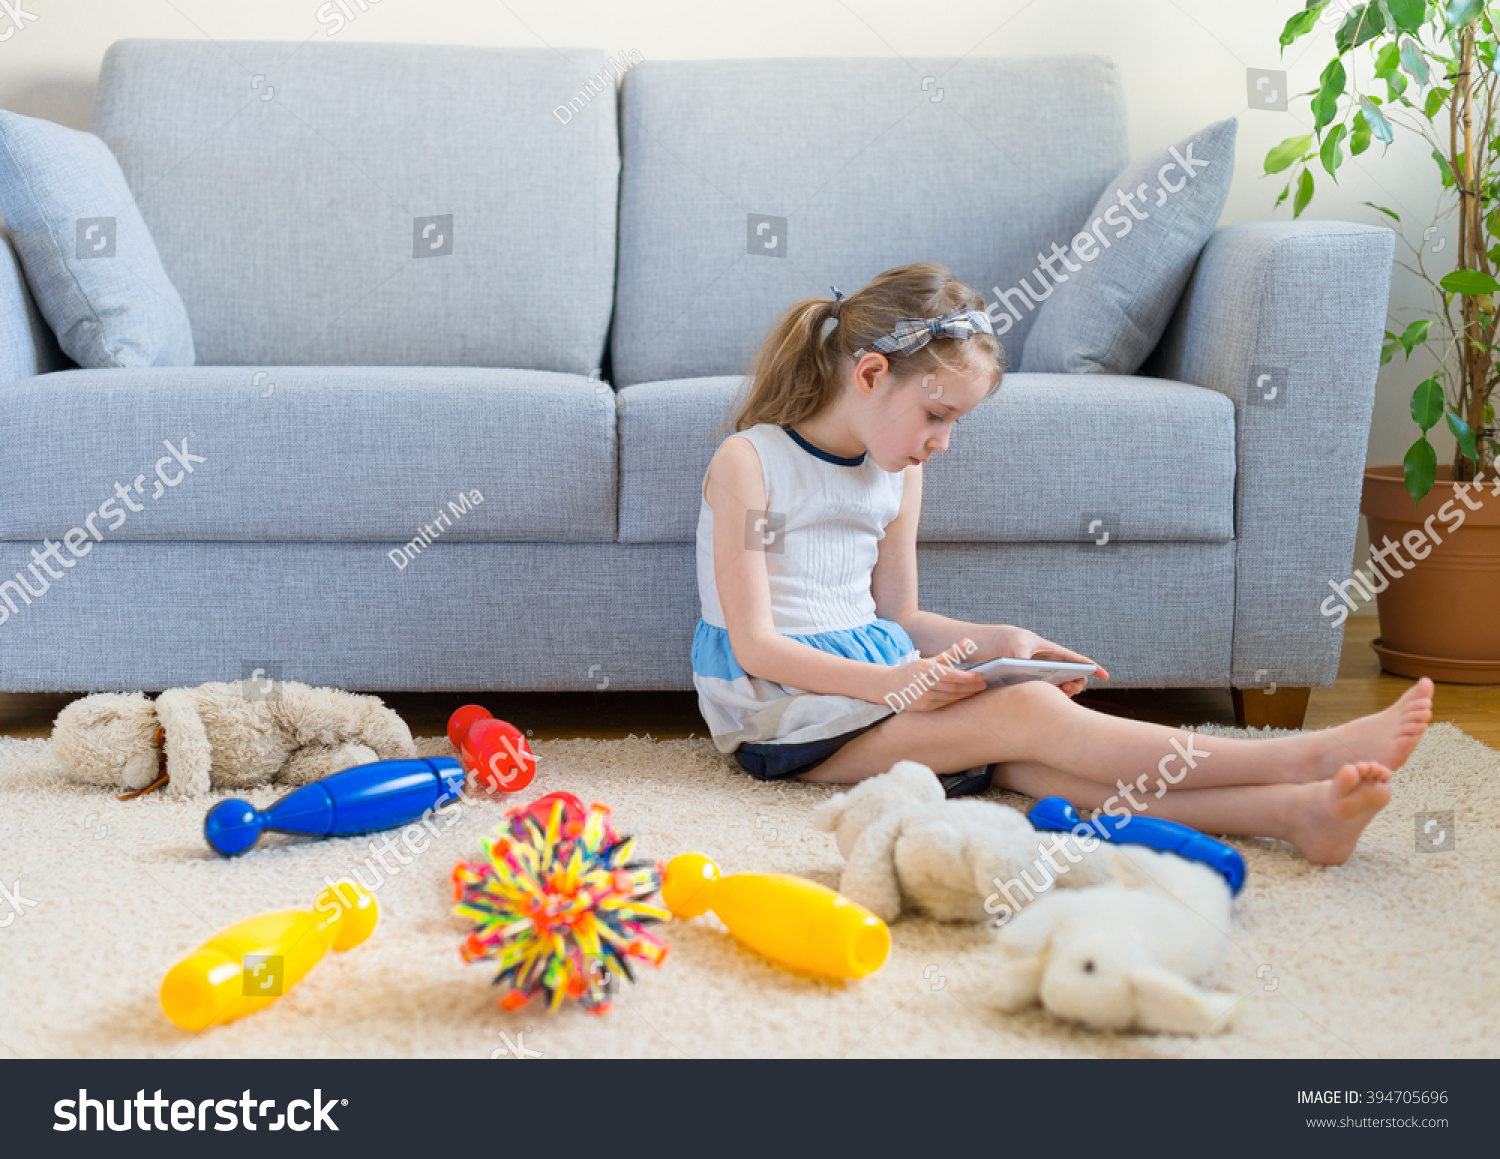 Time Clean Your Toys Little Girl Stock Photo Edit Now 394705696